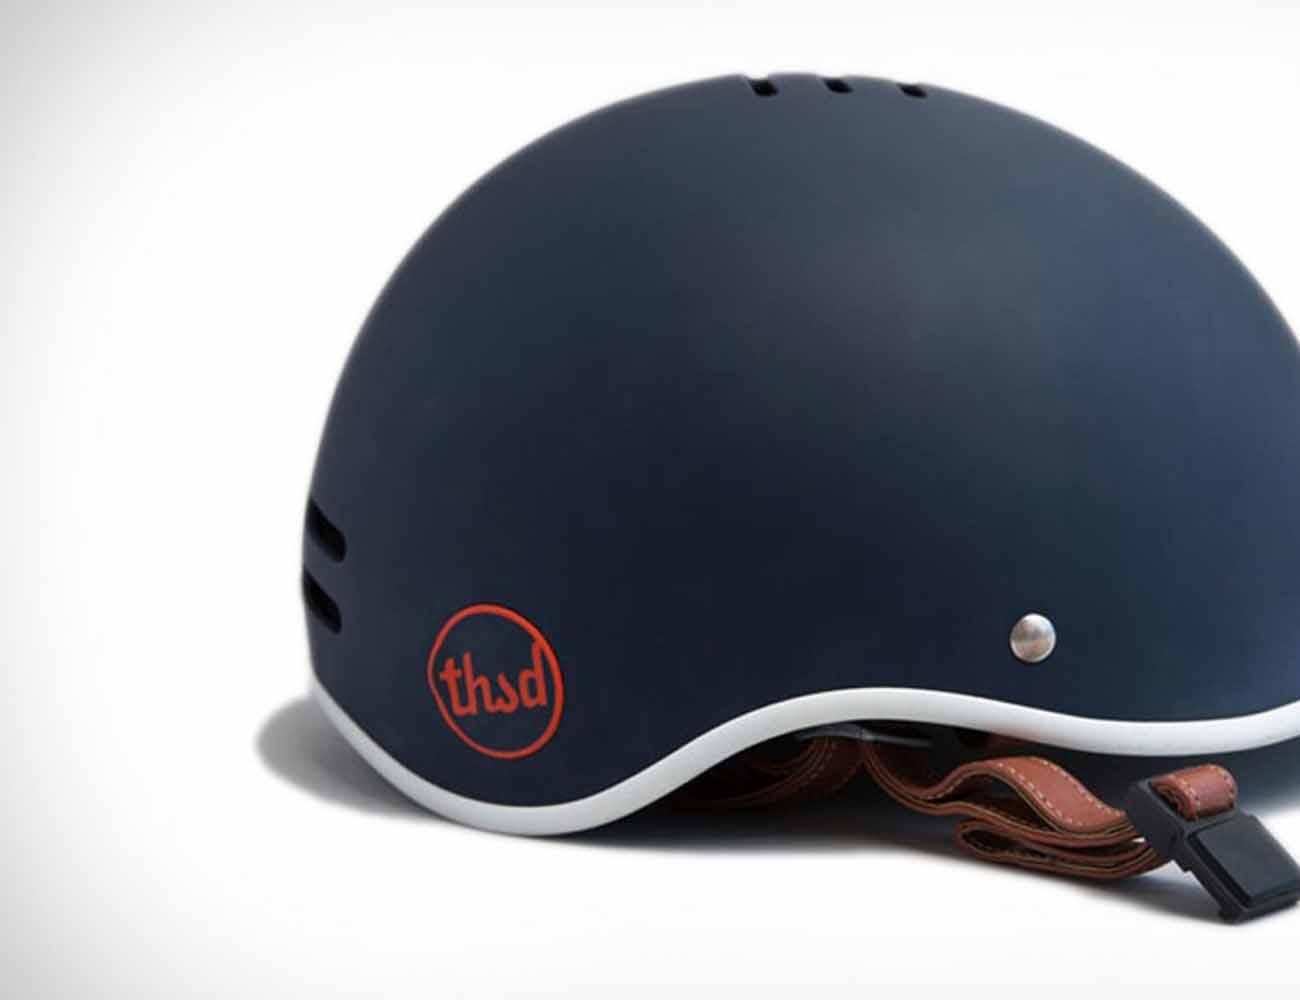 Thousand – Finally, A Bike Helmet You'd Actually Want To Wear